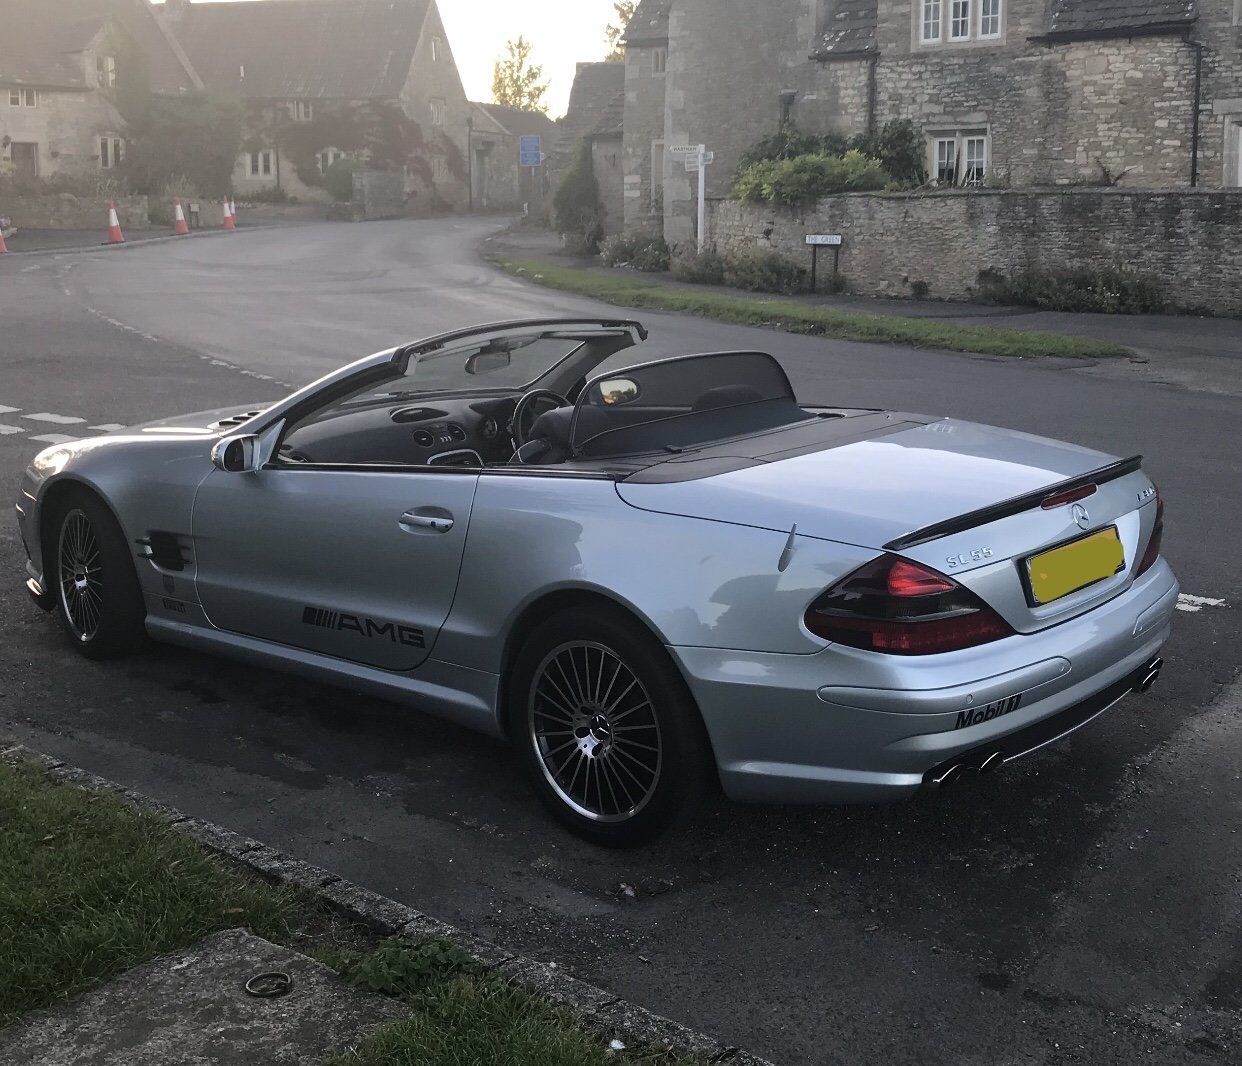 2004 550 bhp Mercedes Supercharged V8 SL55 AMG For Sale (picture 2 of 6)